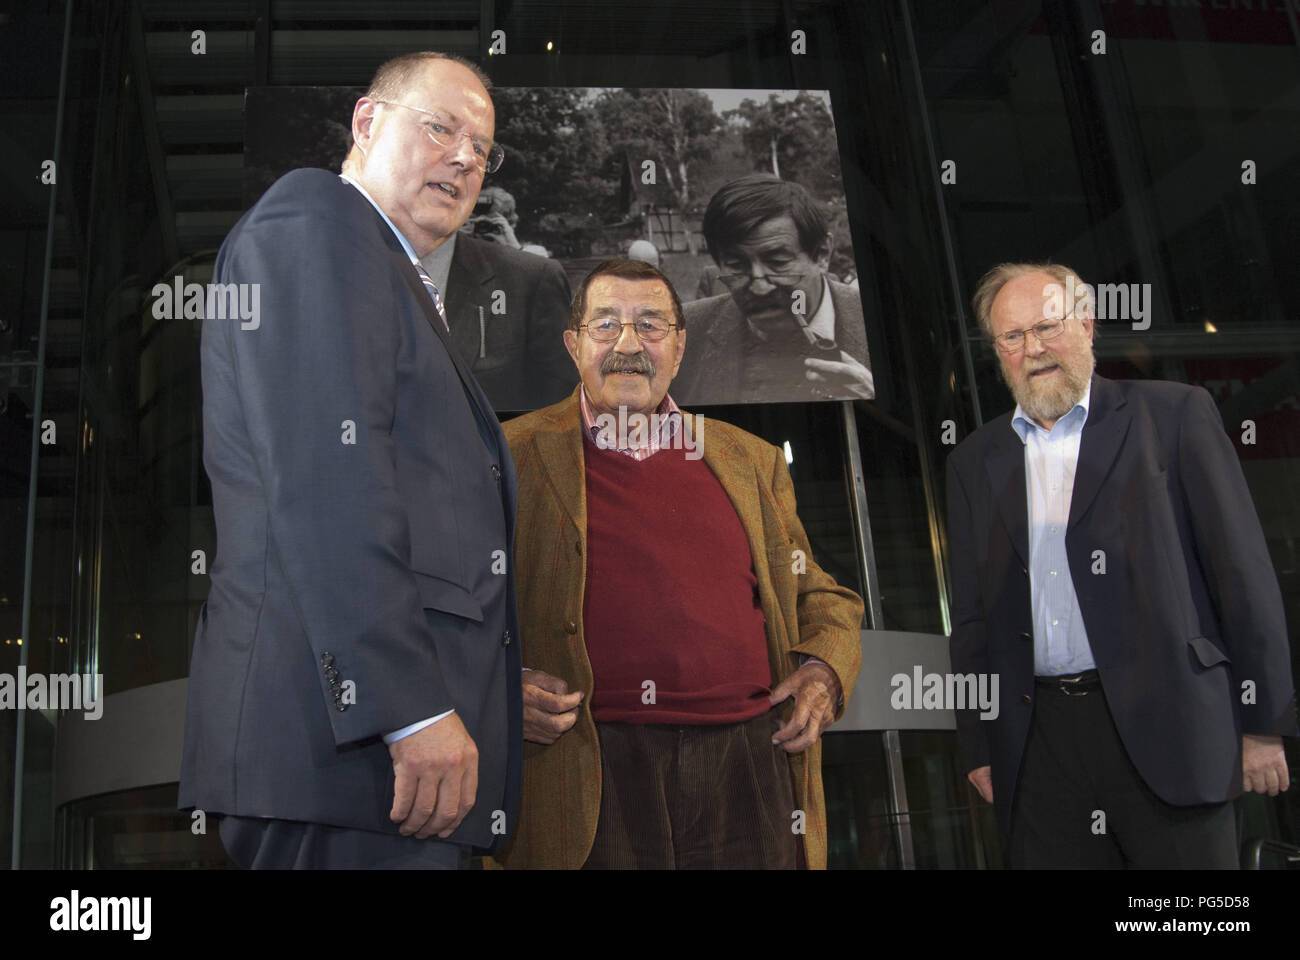 'Berlin, GER, 26.06.2013: Book presentation in Willy-Brandt-House: ''Willy Brandt and Guenter Grass: The letter exchange'' with Guenter Grass, writer and Peer Steinbrueck, SPD-politician and chancellor candidate. Read with Wolfgang Thierse, SPD.' - Stock Image